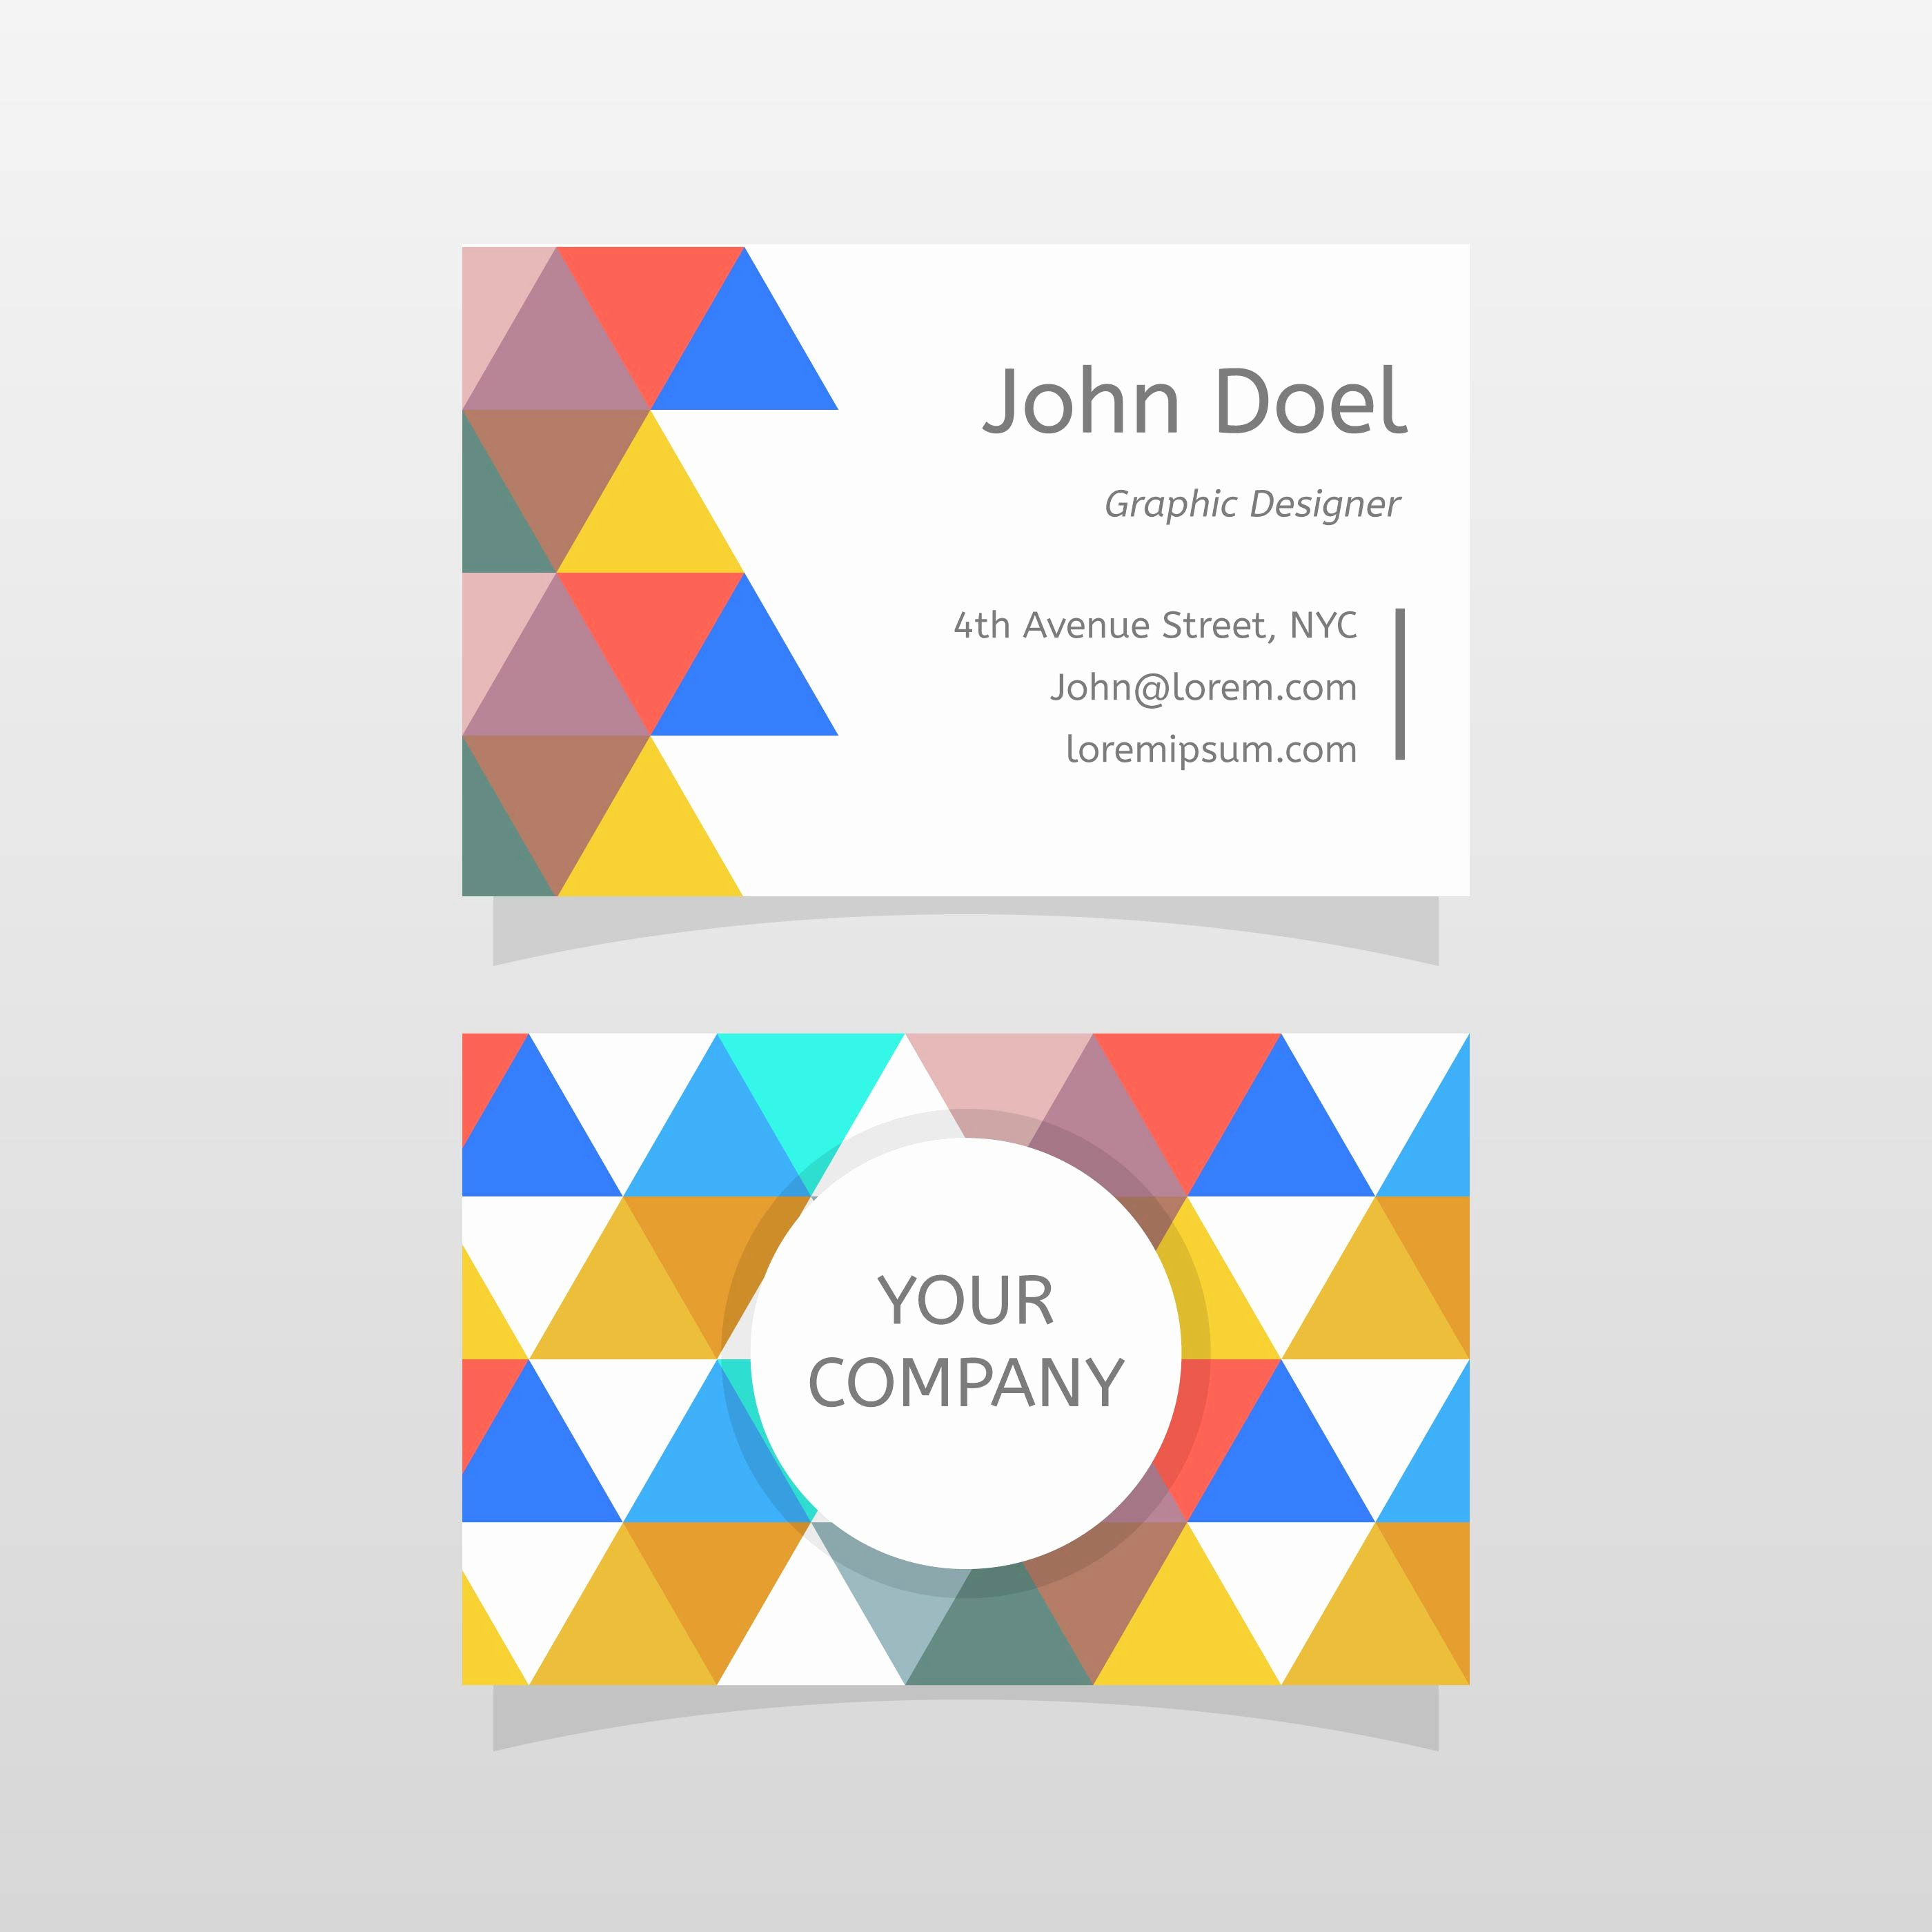 Business Card Template Vector New Flat Abstract Graphic Designer Business Card Vector